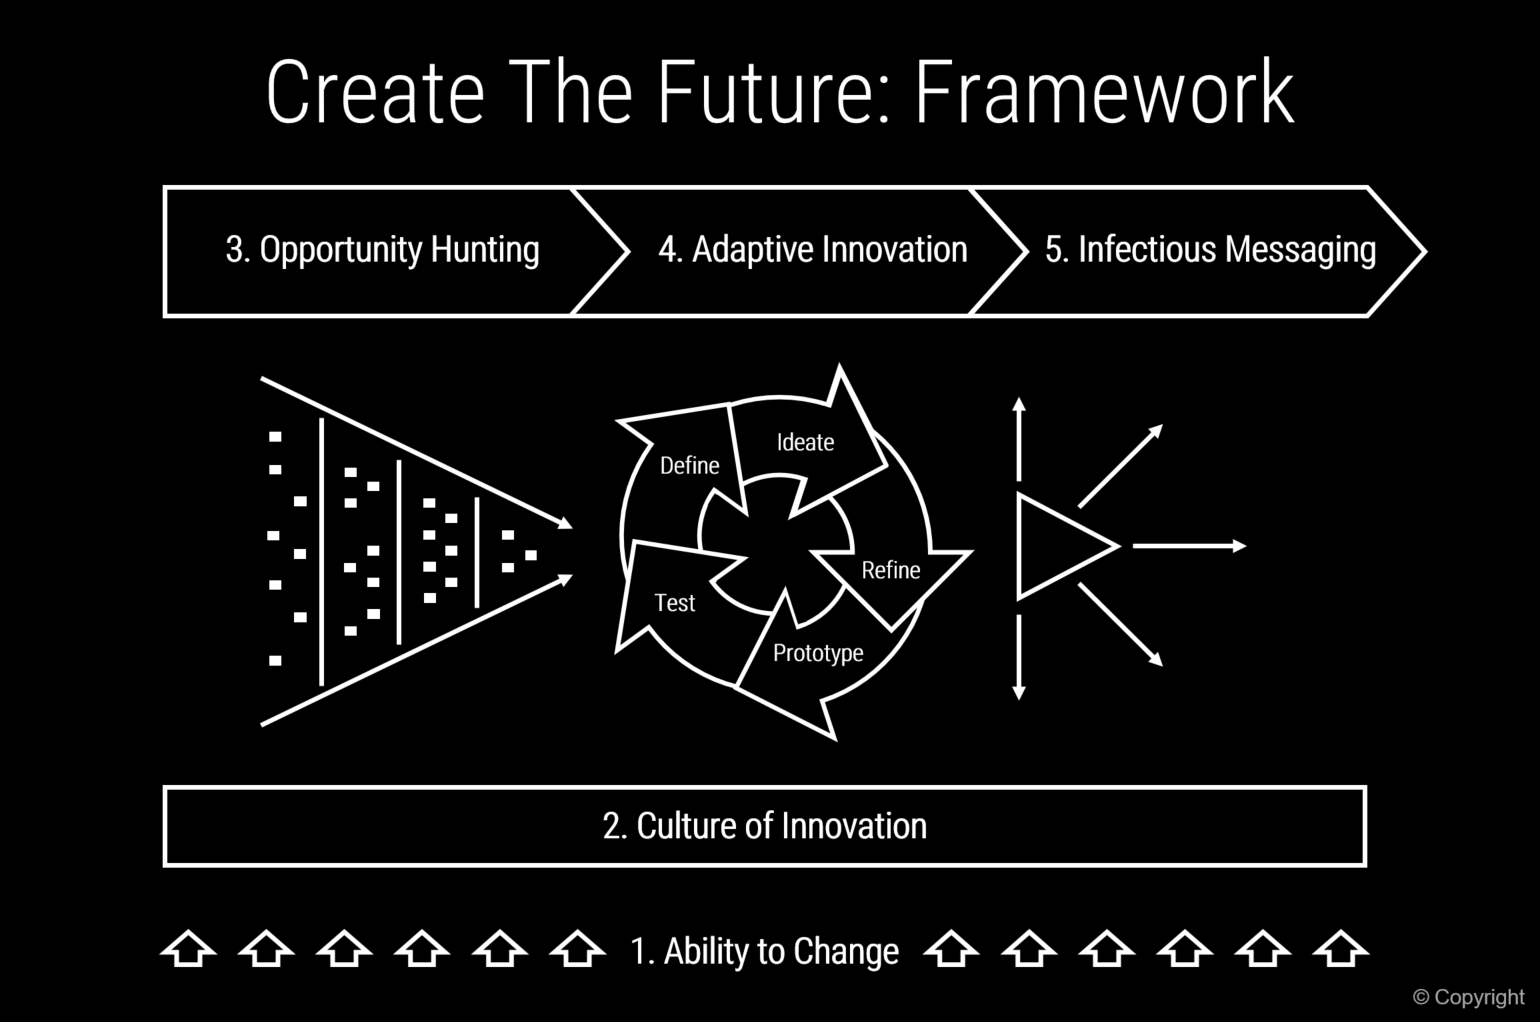 Create the Future Innovation Framework